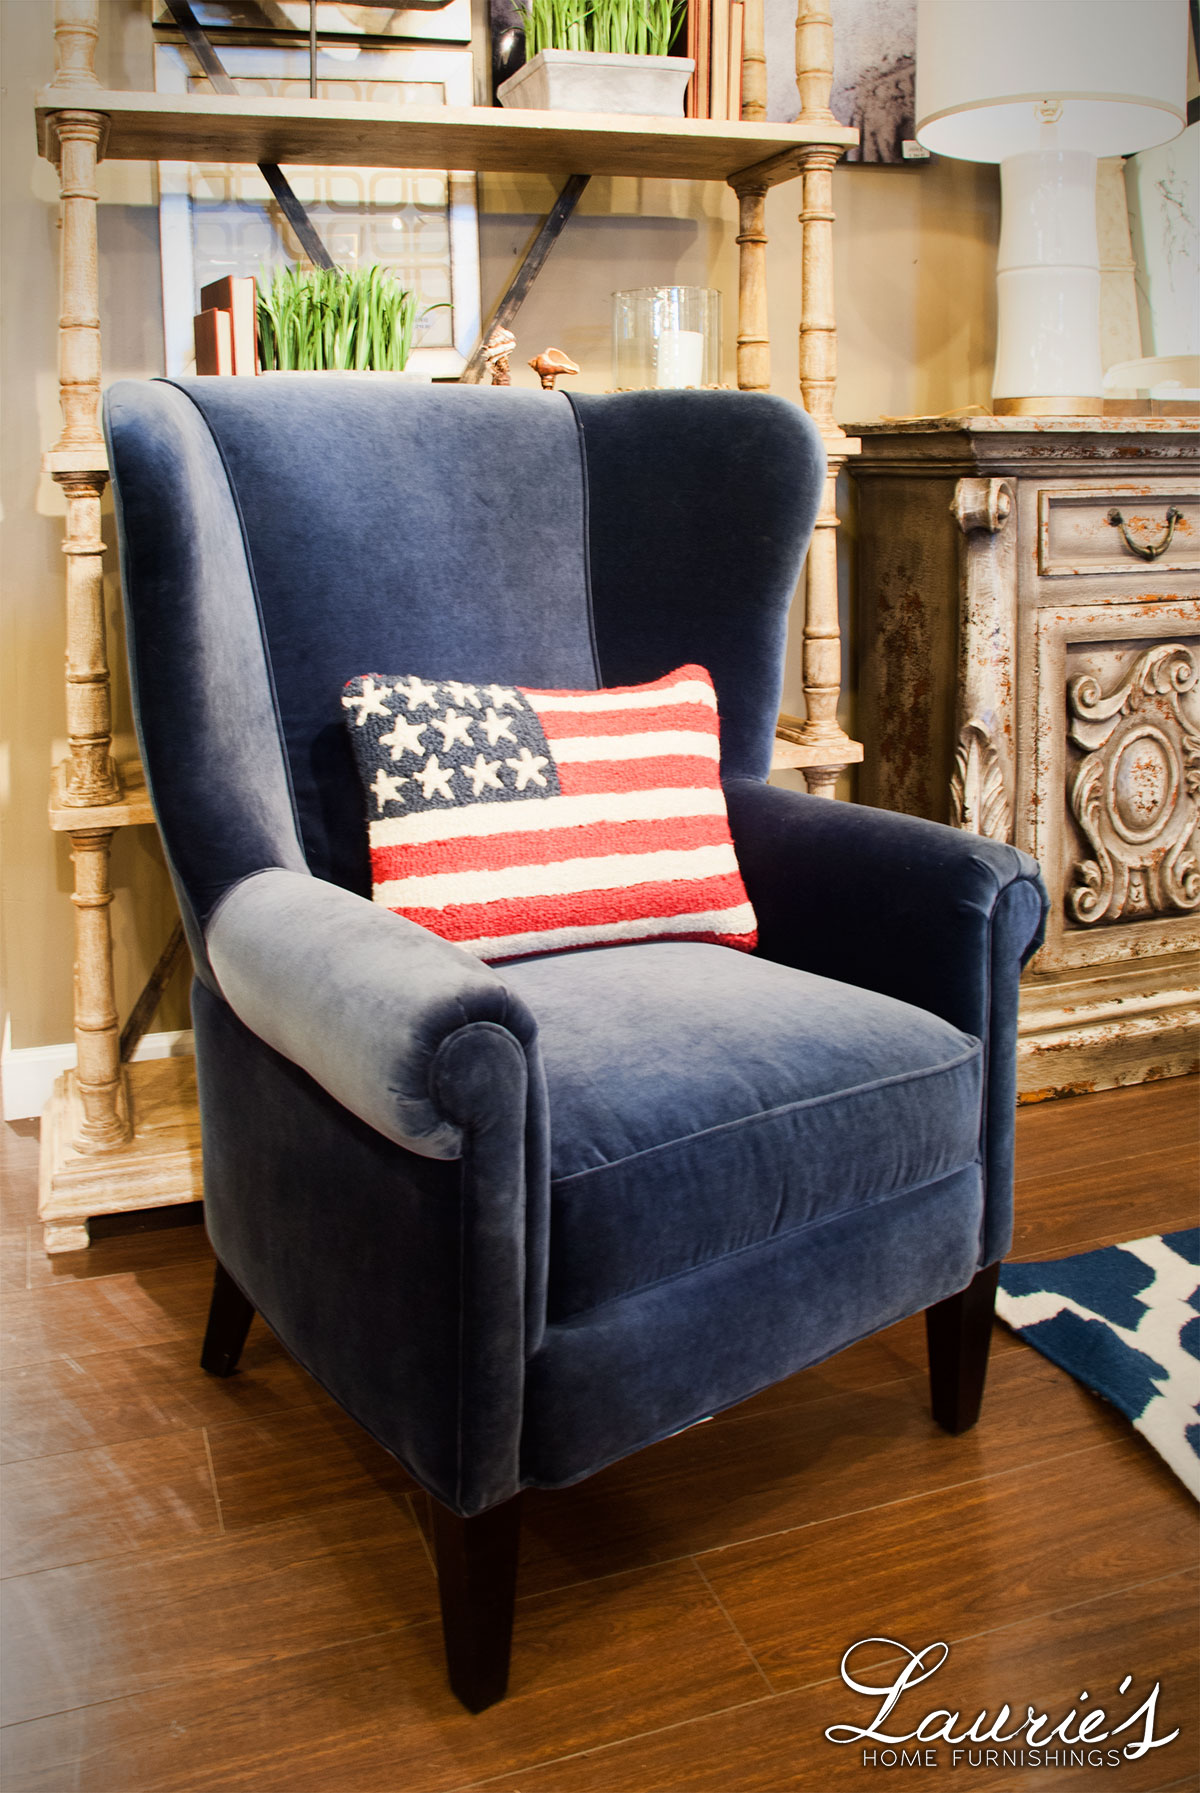 4th_july_chair